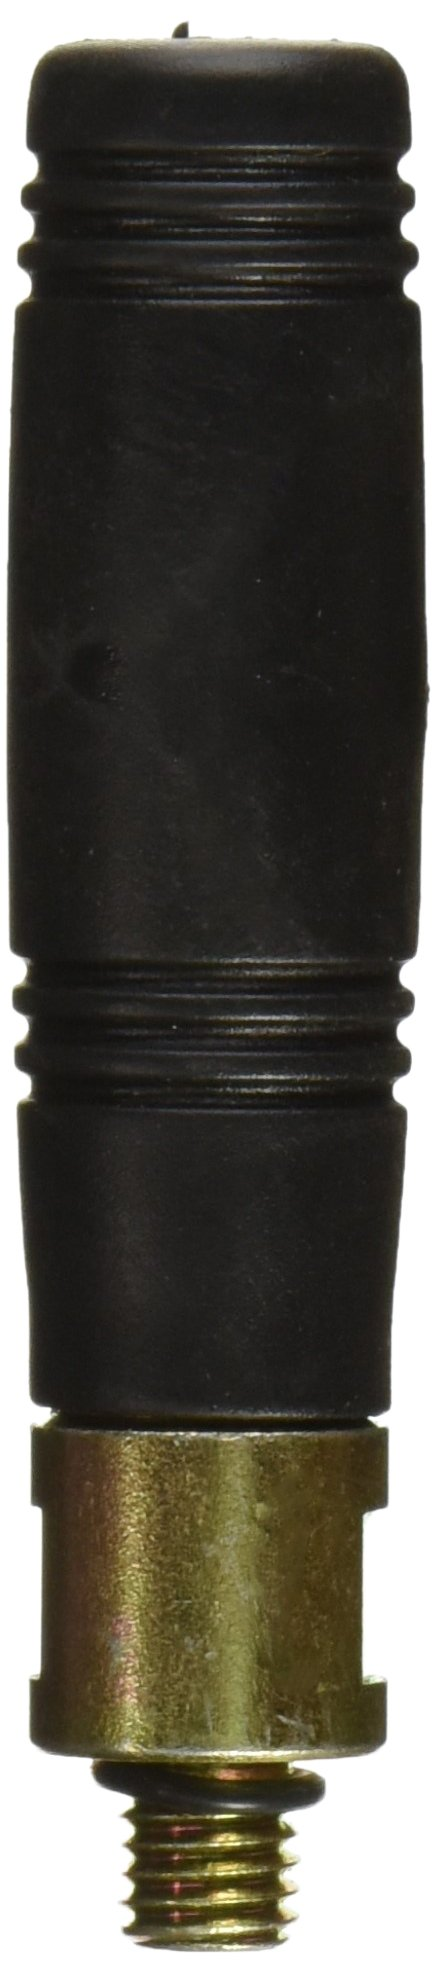 Toolocity 7W038 Handle for Air Polishers/Grinders